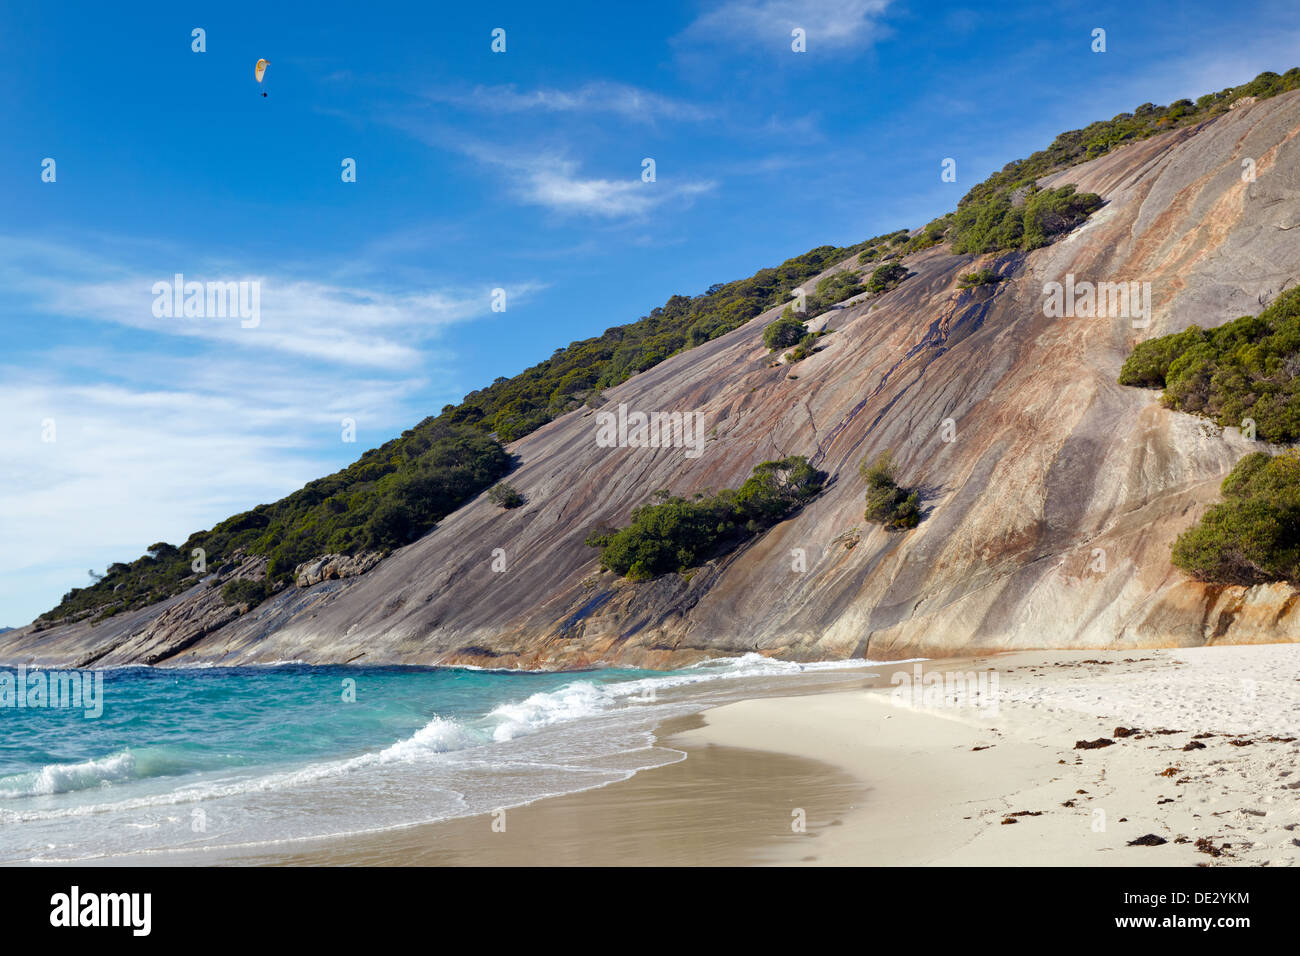 Misery Beach, Torndirrup National Park, Albany, Western Australia Stock Photo